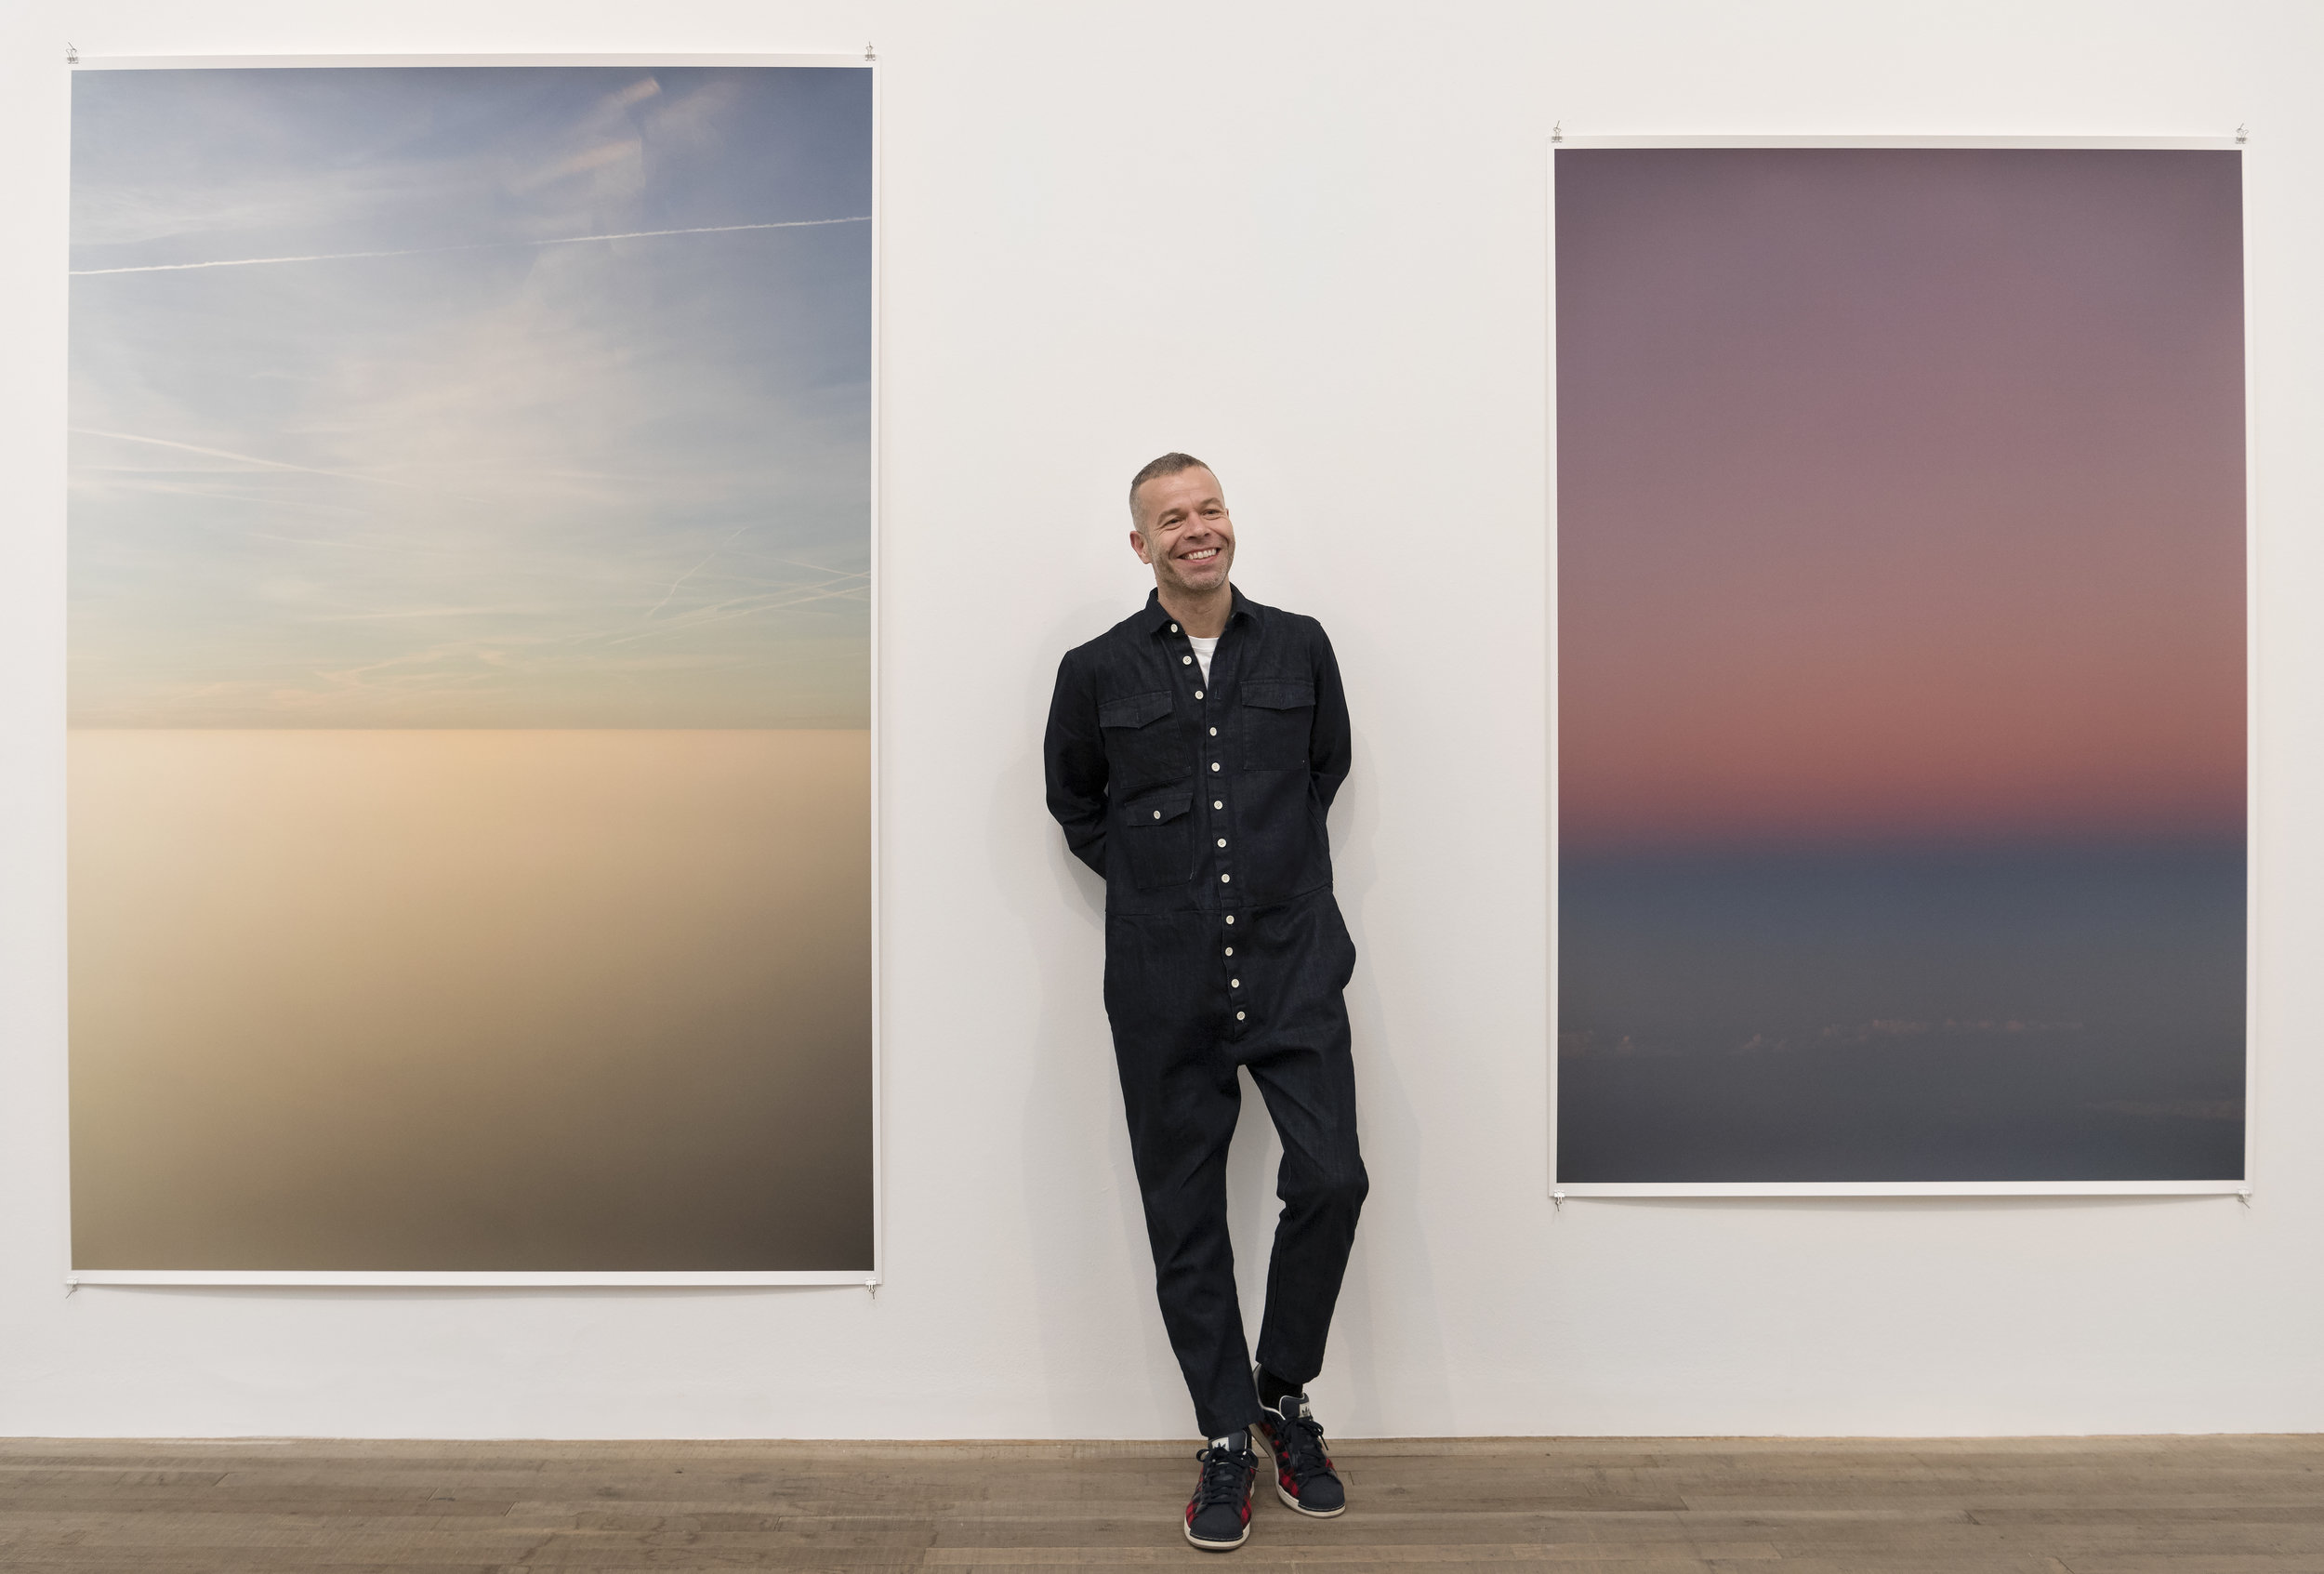 Wolfgang Tillmans poses in front of his works  Transient 2,  2015 and  Tag/Nacht II,  2010. Courtesy Tate Photography